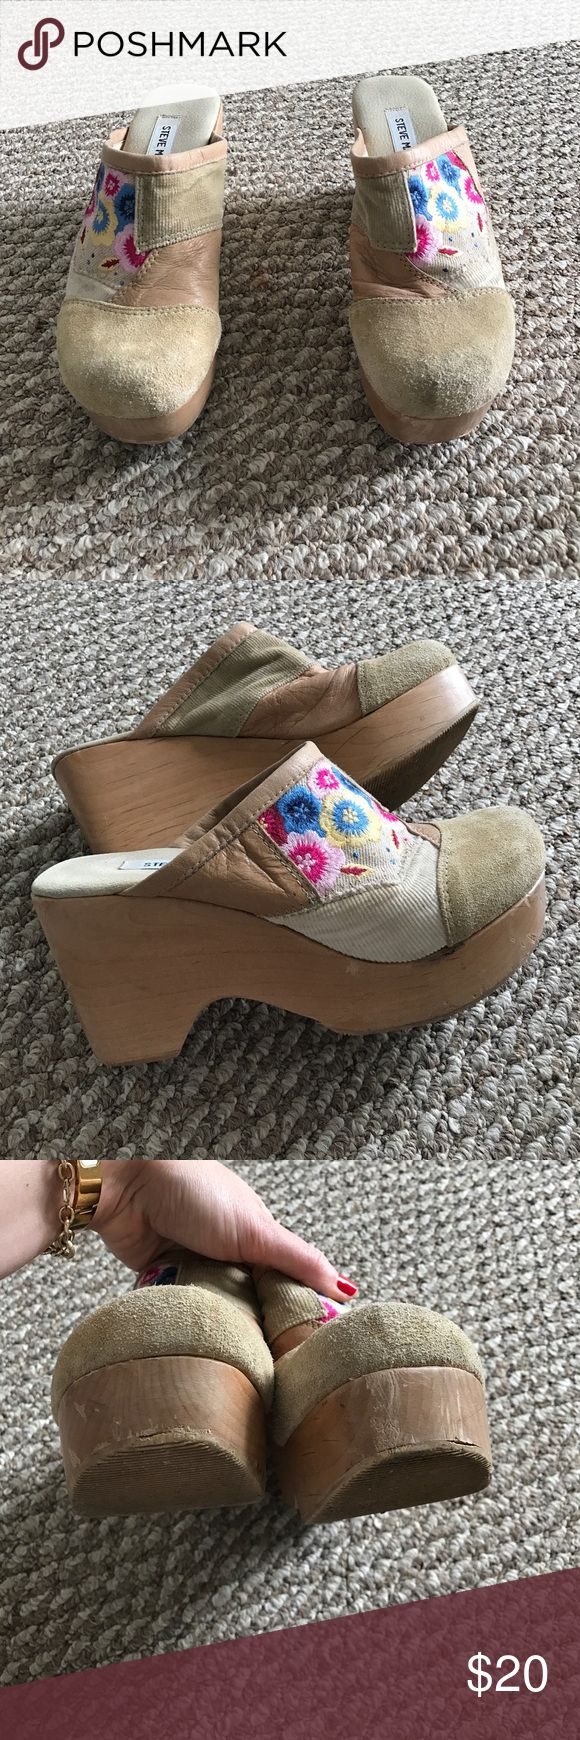 """Steve Madden Clogs Steve Madden Clogs. Suede mixed with corduroy plus an adorable flower design. Flowers include blues yellows and pinks. Clogs are overall in the tan family. The heel is 3.5"""" and the platform is approx 1.5"""". These Clogs gives off a very vintage / hippie feeling. There is wear to these Clogs as seen in the pictures but they are ready to be put on and worn! Overall they appear cute and fine! Smoke free home! Steve Madden Shoes Mules & Clogs"""